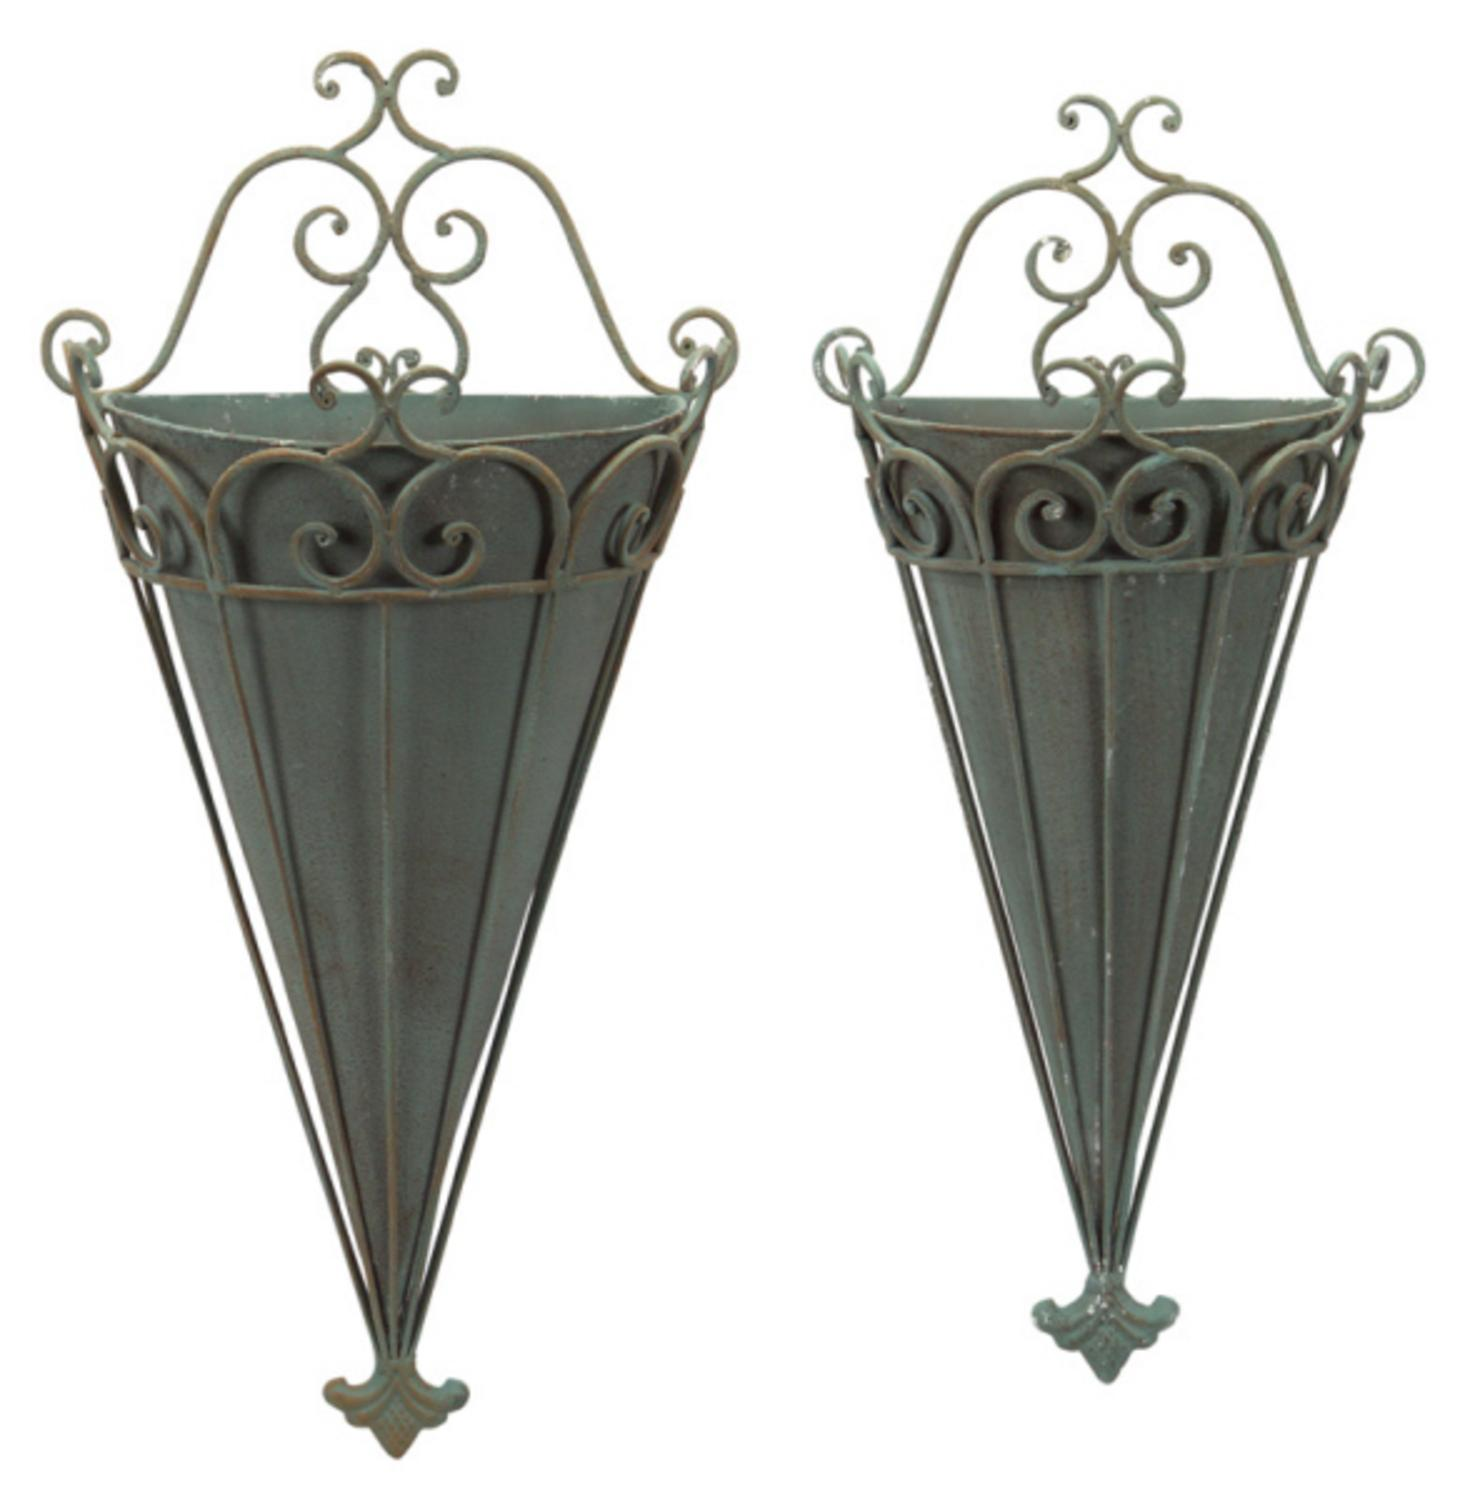 Set of 2 Antique Gray Scrolled Metal Flower Pot Wall ... on Flower Wall Sconces id=45489